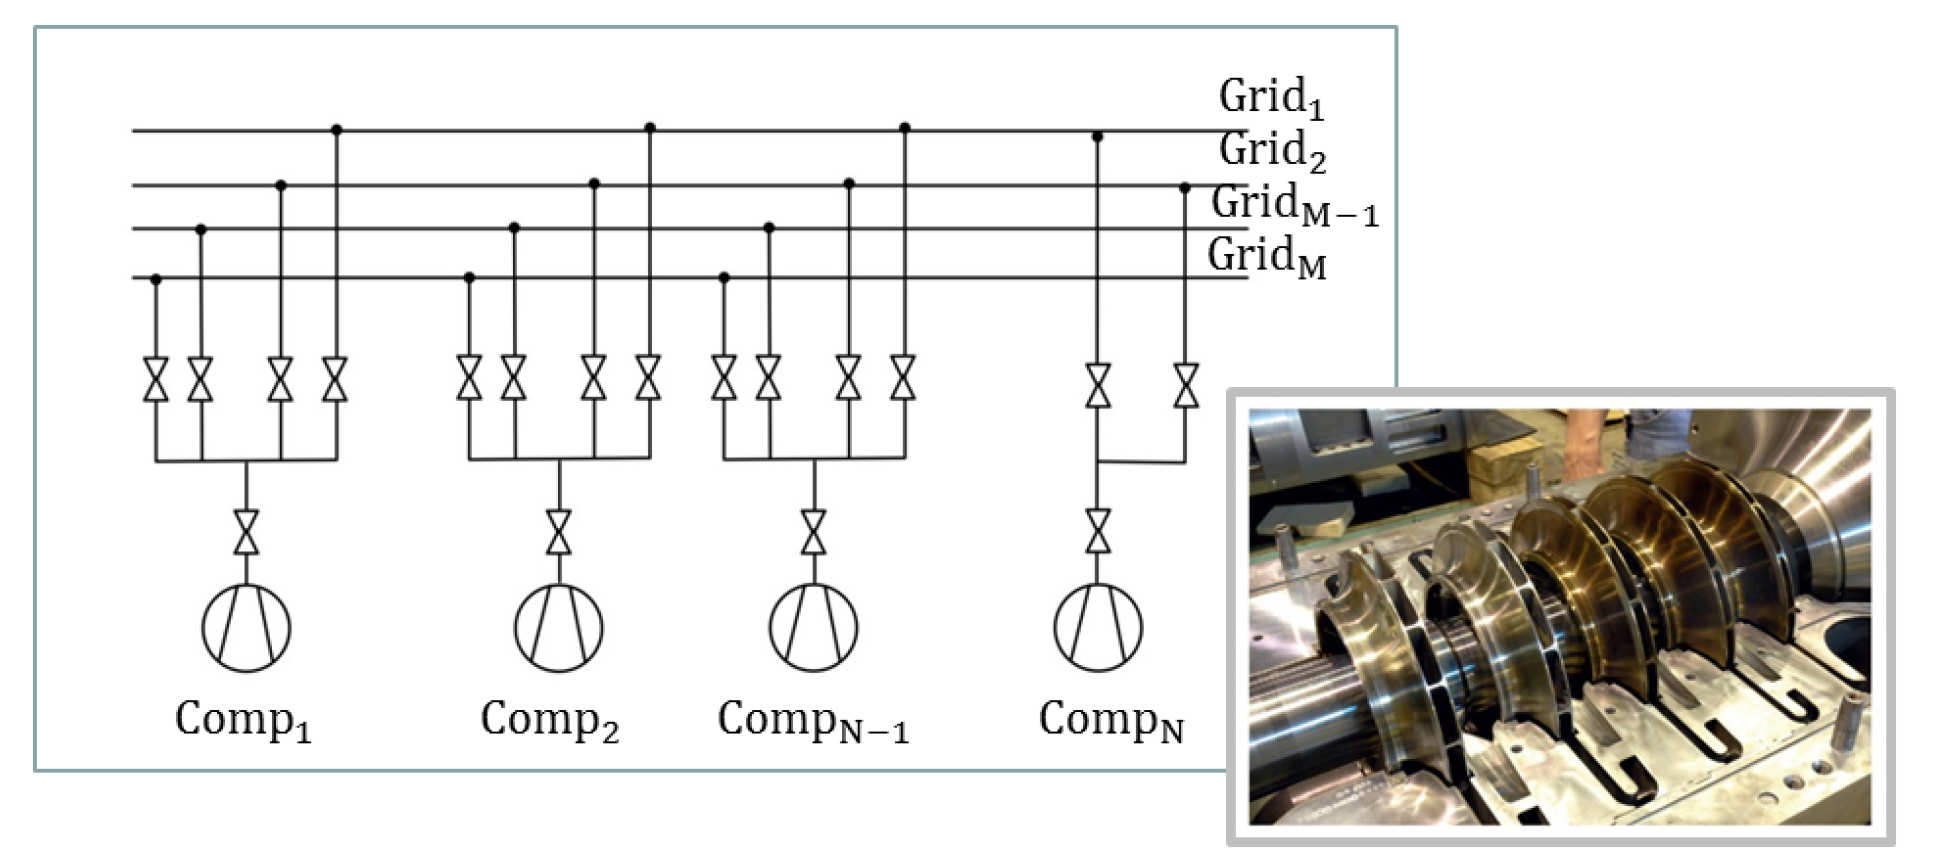 Optimization of a system with several compressors feeding a compresssed air utility grid